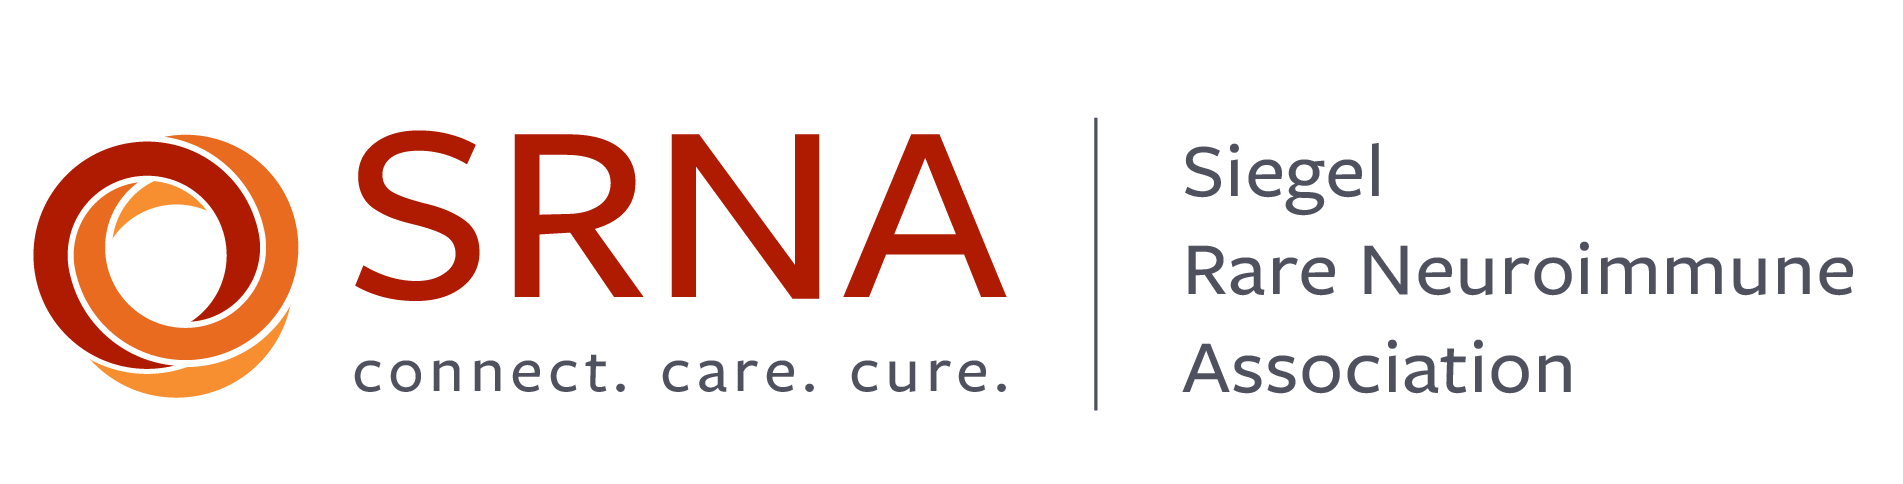 Siegel Rare Neuroimmune Association